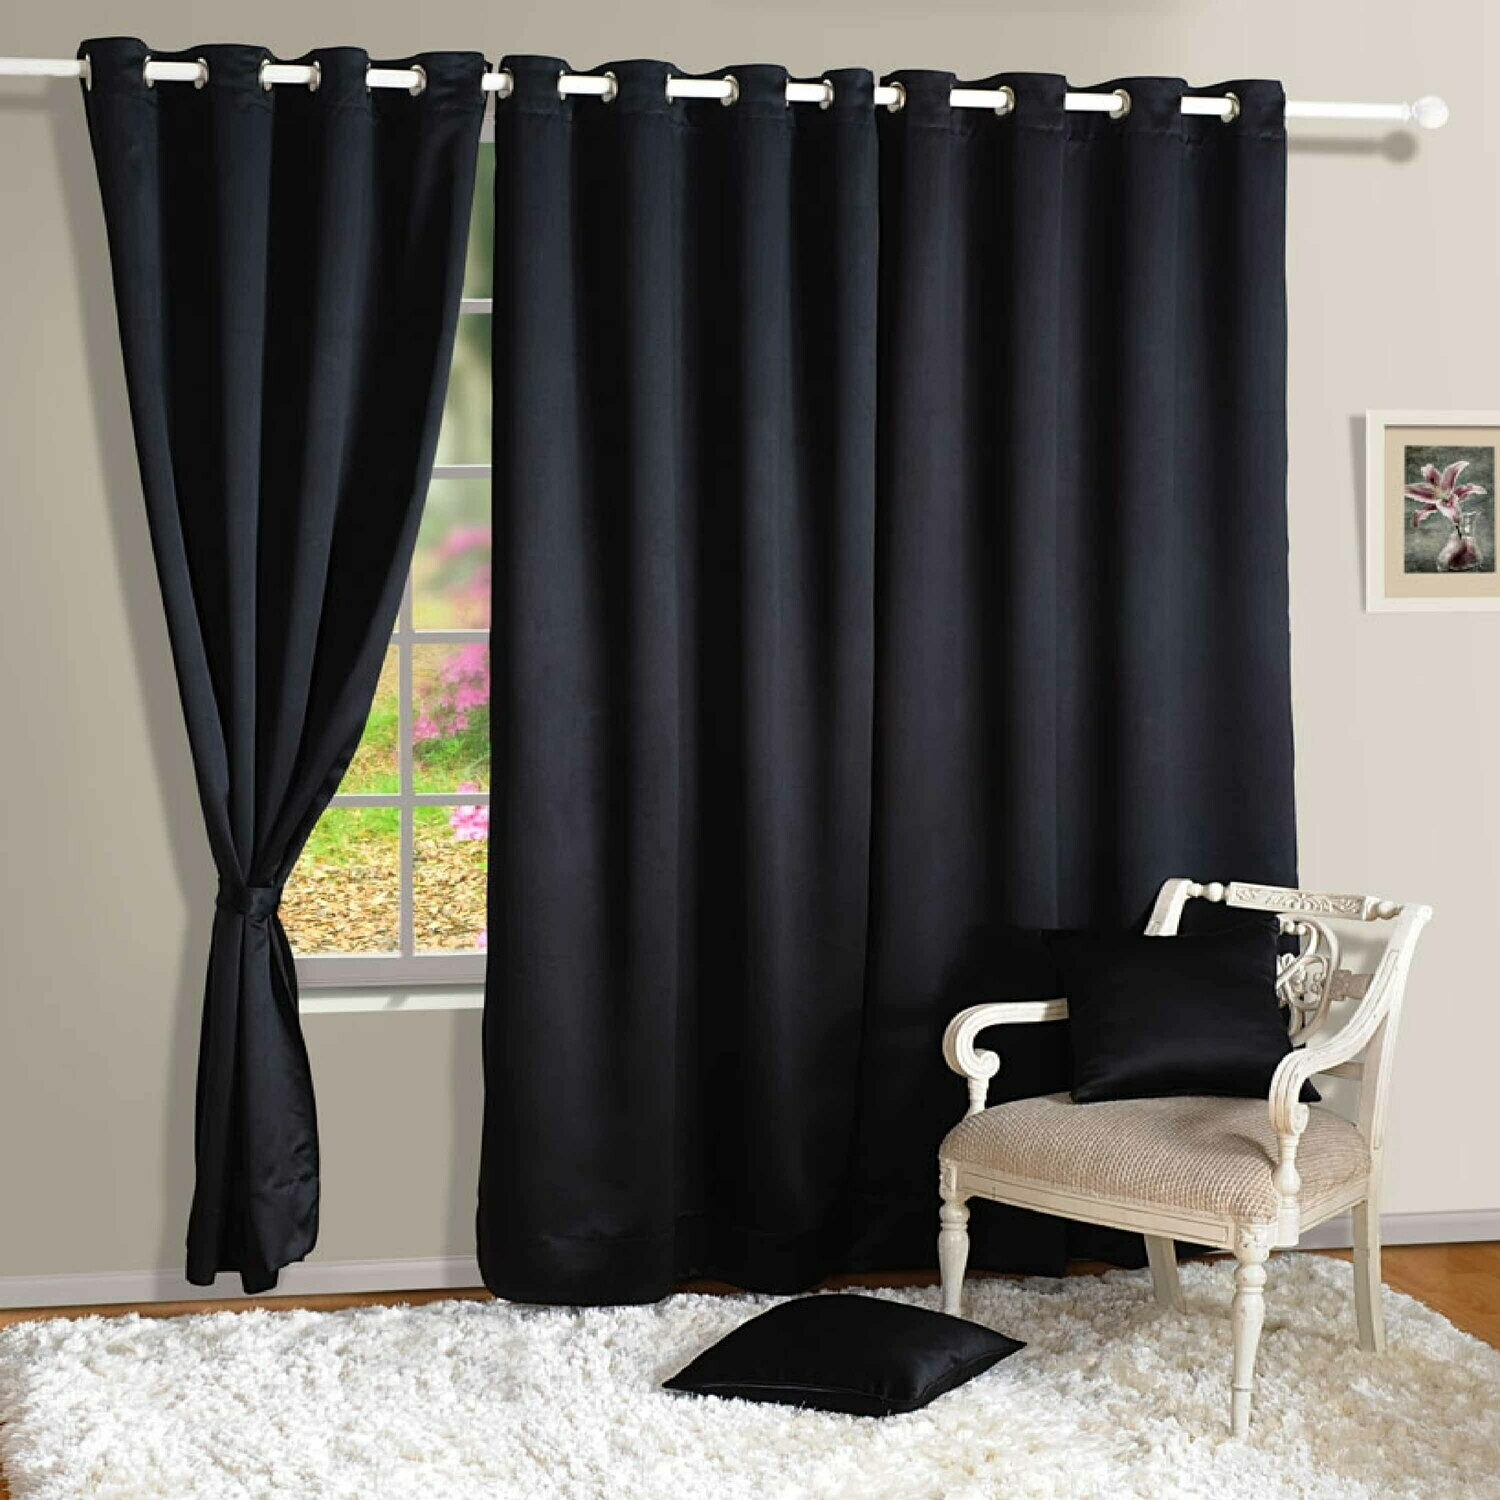 Swayam Brown Colour Solid Blackout Eyelet Curtain for Window